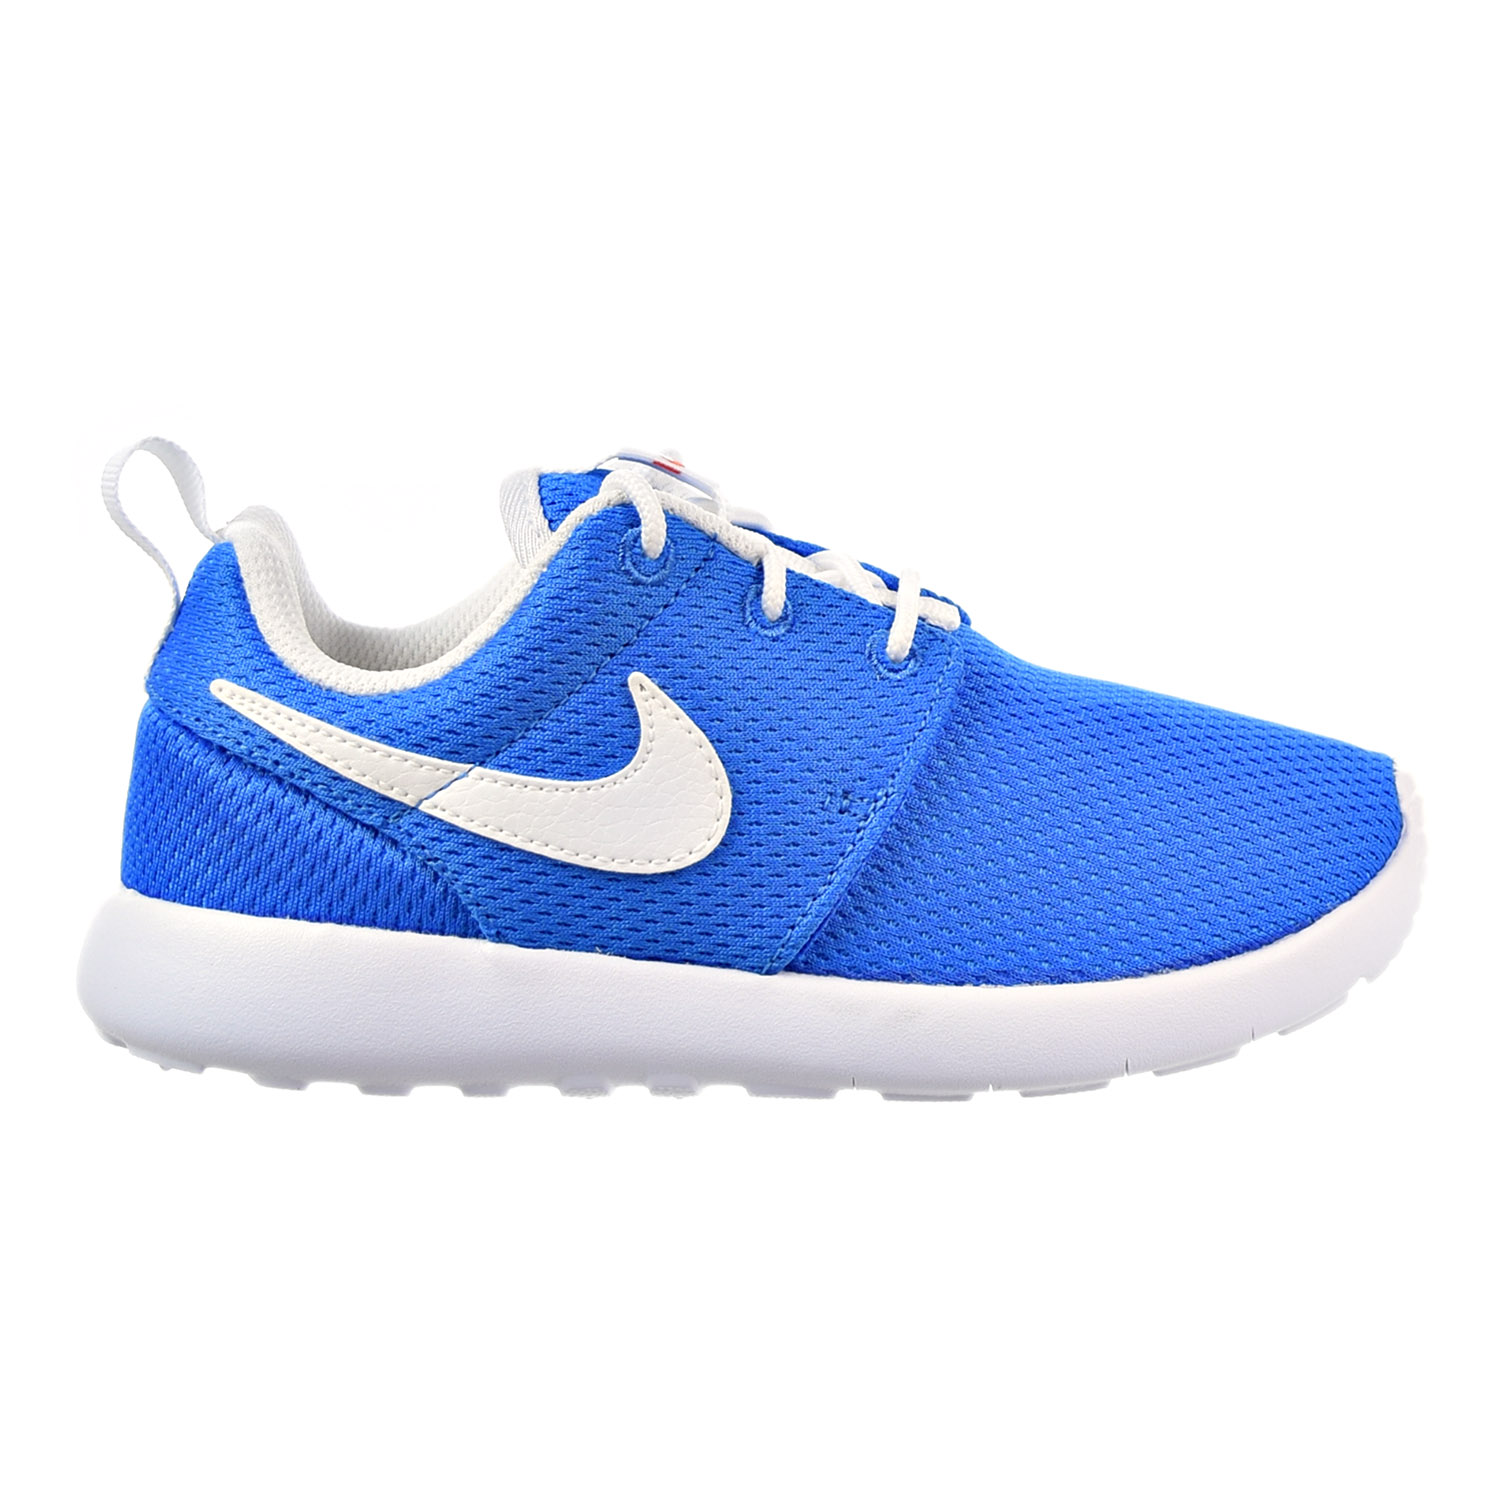 NEW Nike Roshe One Youth Running Shoes Navy Blue and White 599728-416 GS